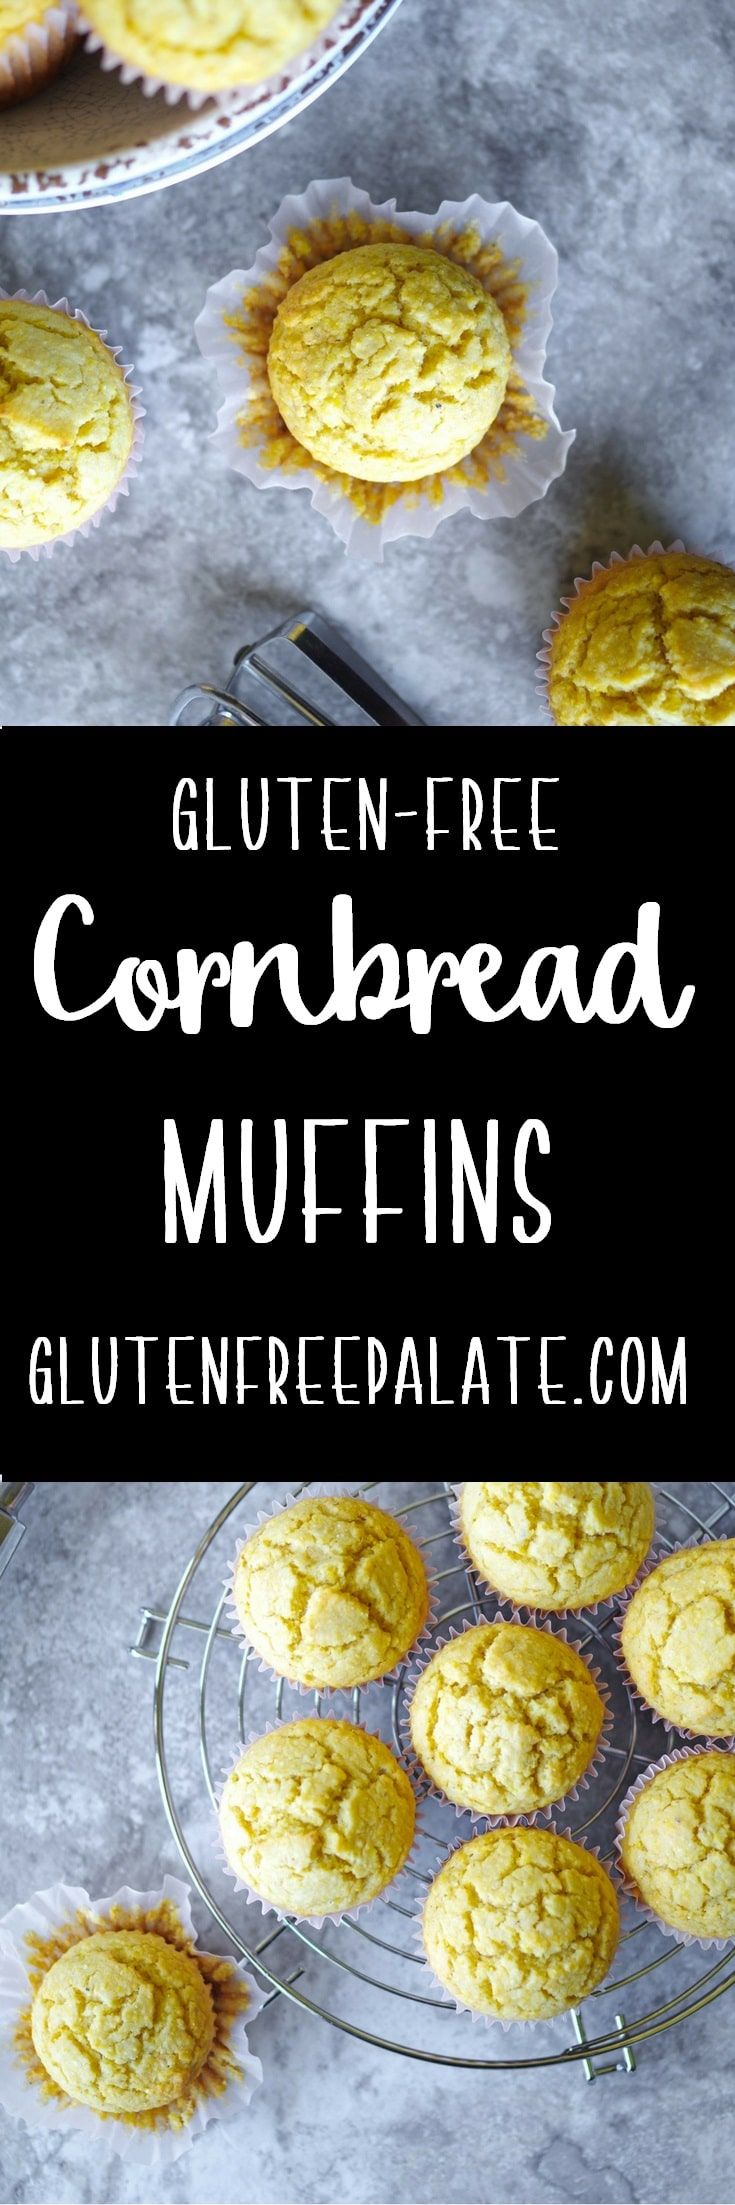 Crumbly, sweet, and filling - Gluten-Free Cornbread is sure to be a staple in your gluten-free kitchen. via @gfpalate